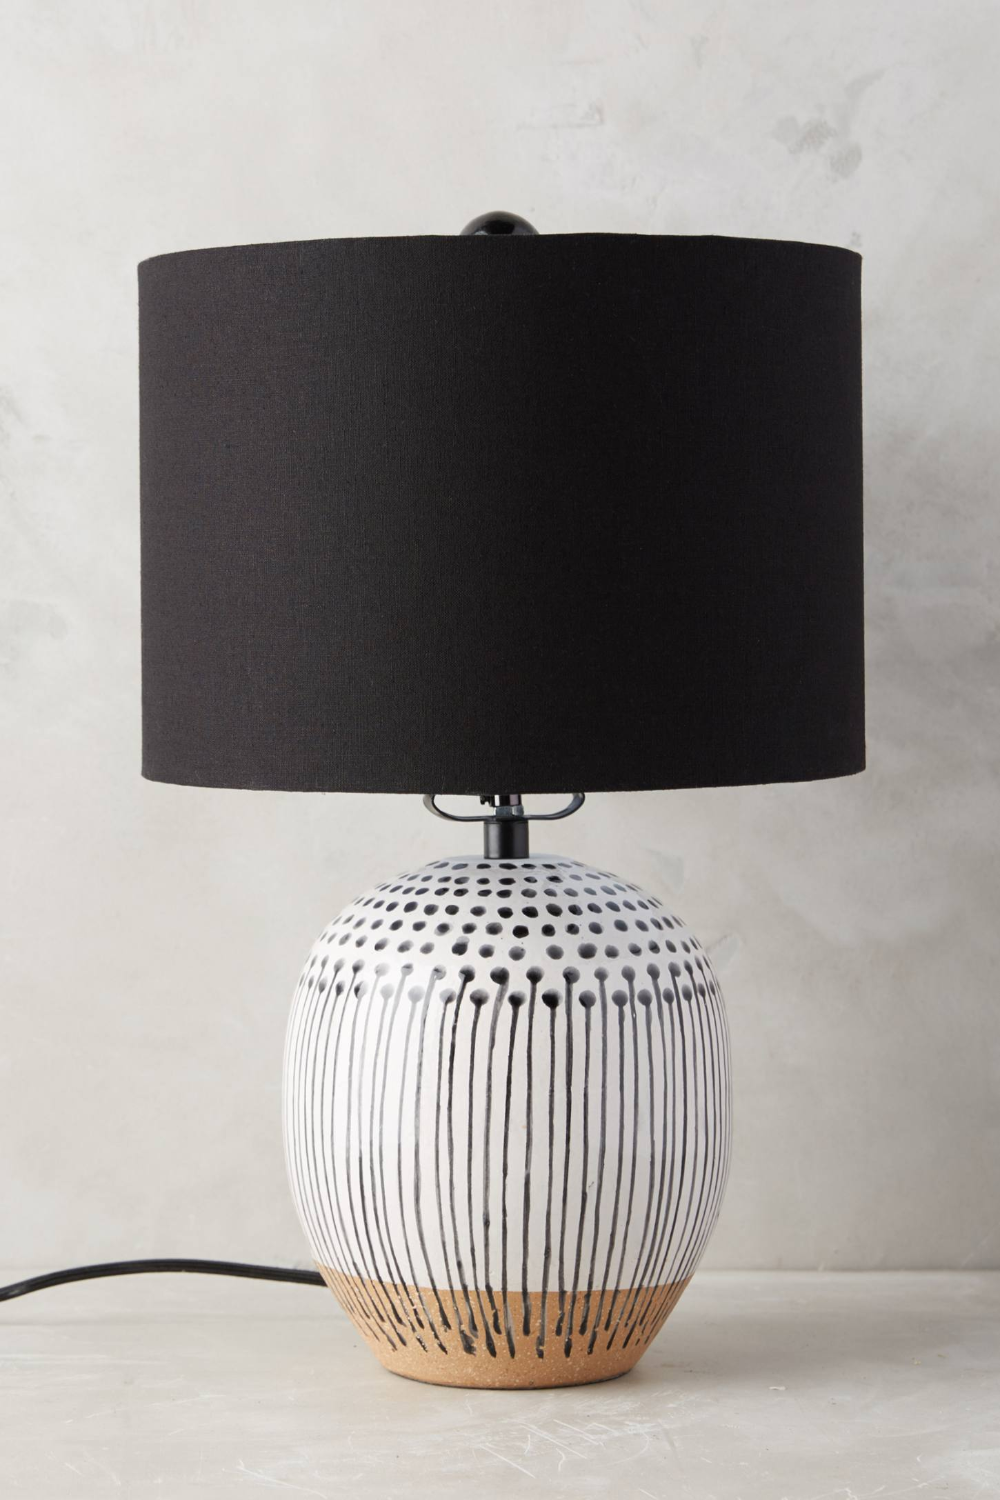 Shop Coast Table Lamp Named After Soft Sand And Silvery Waves This Lamp Gives An Unexpected Co Table Lamps Living Room Modern Table Lamp Silver Table Lamps